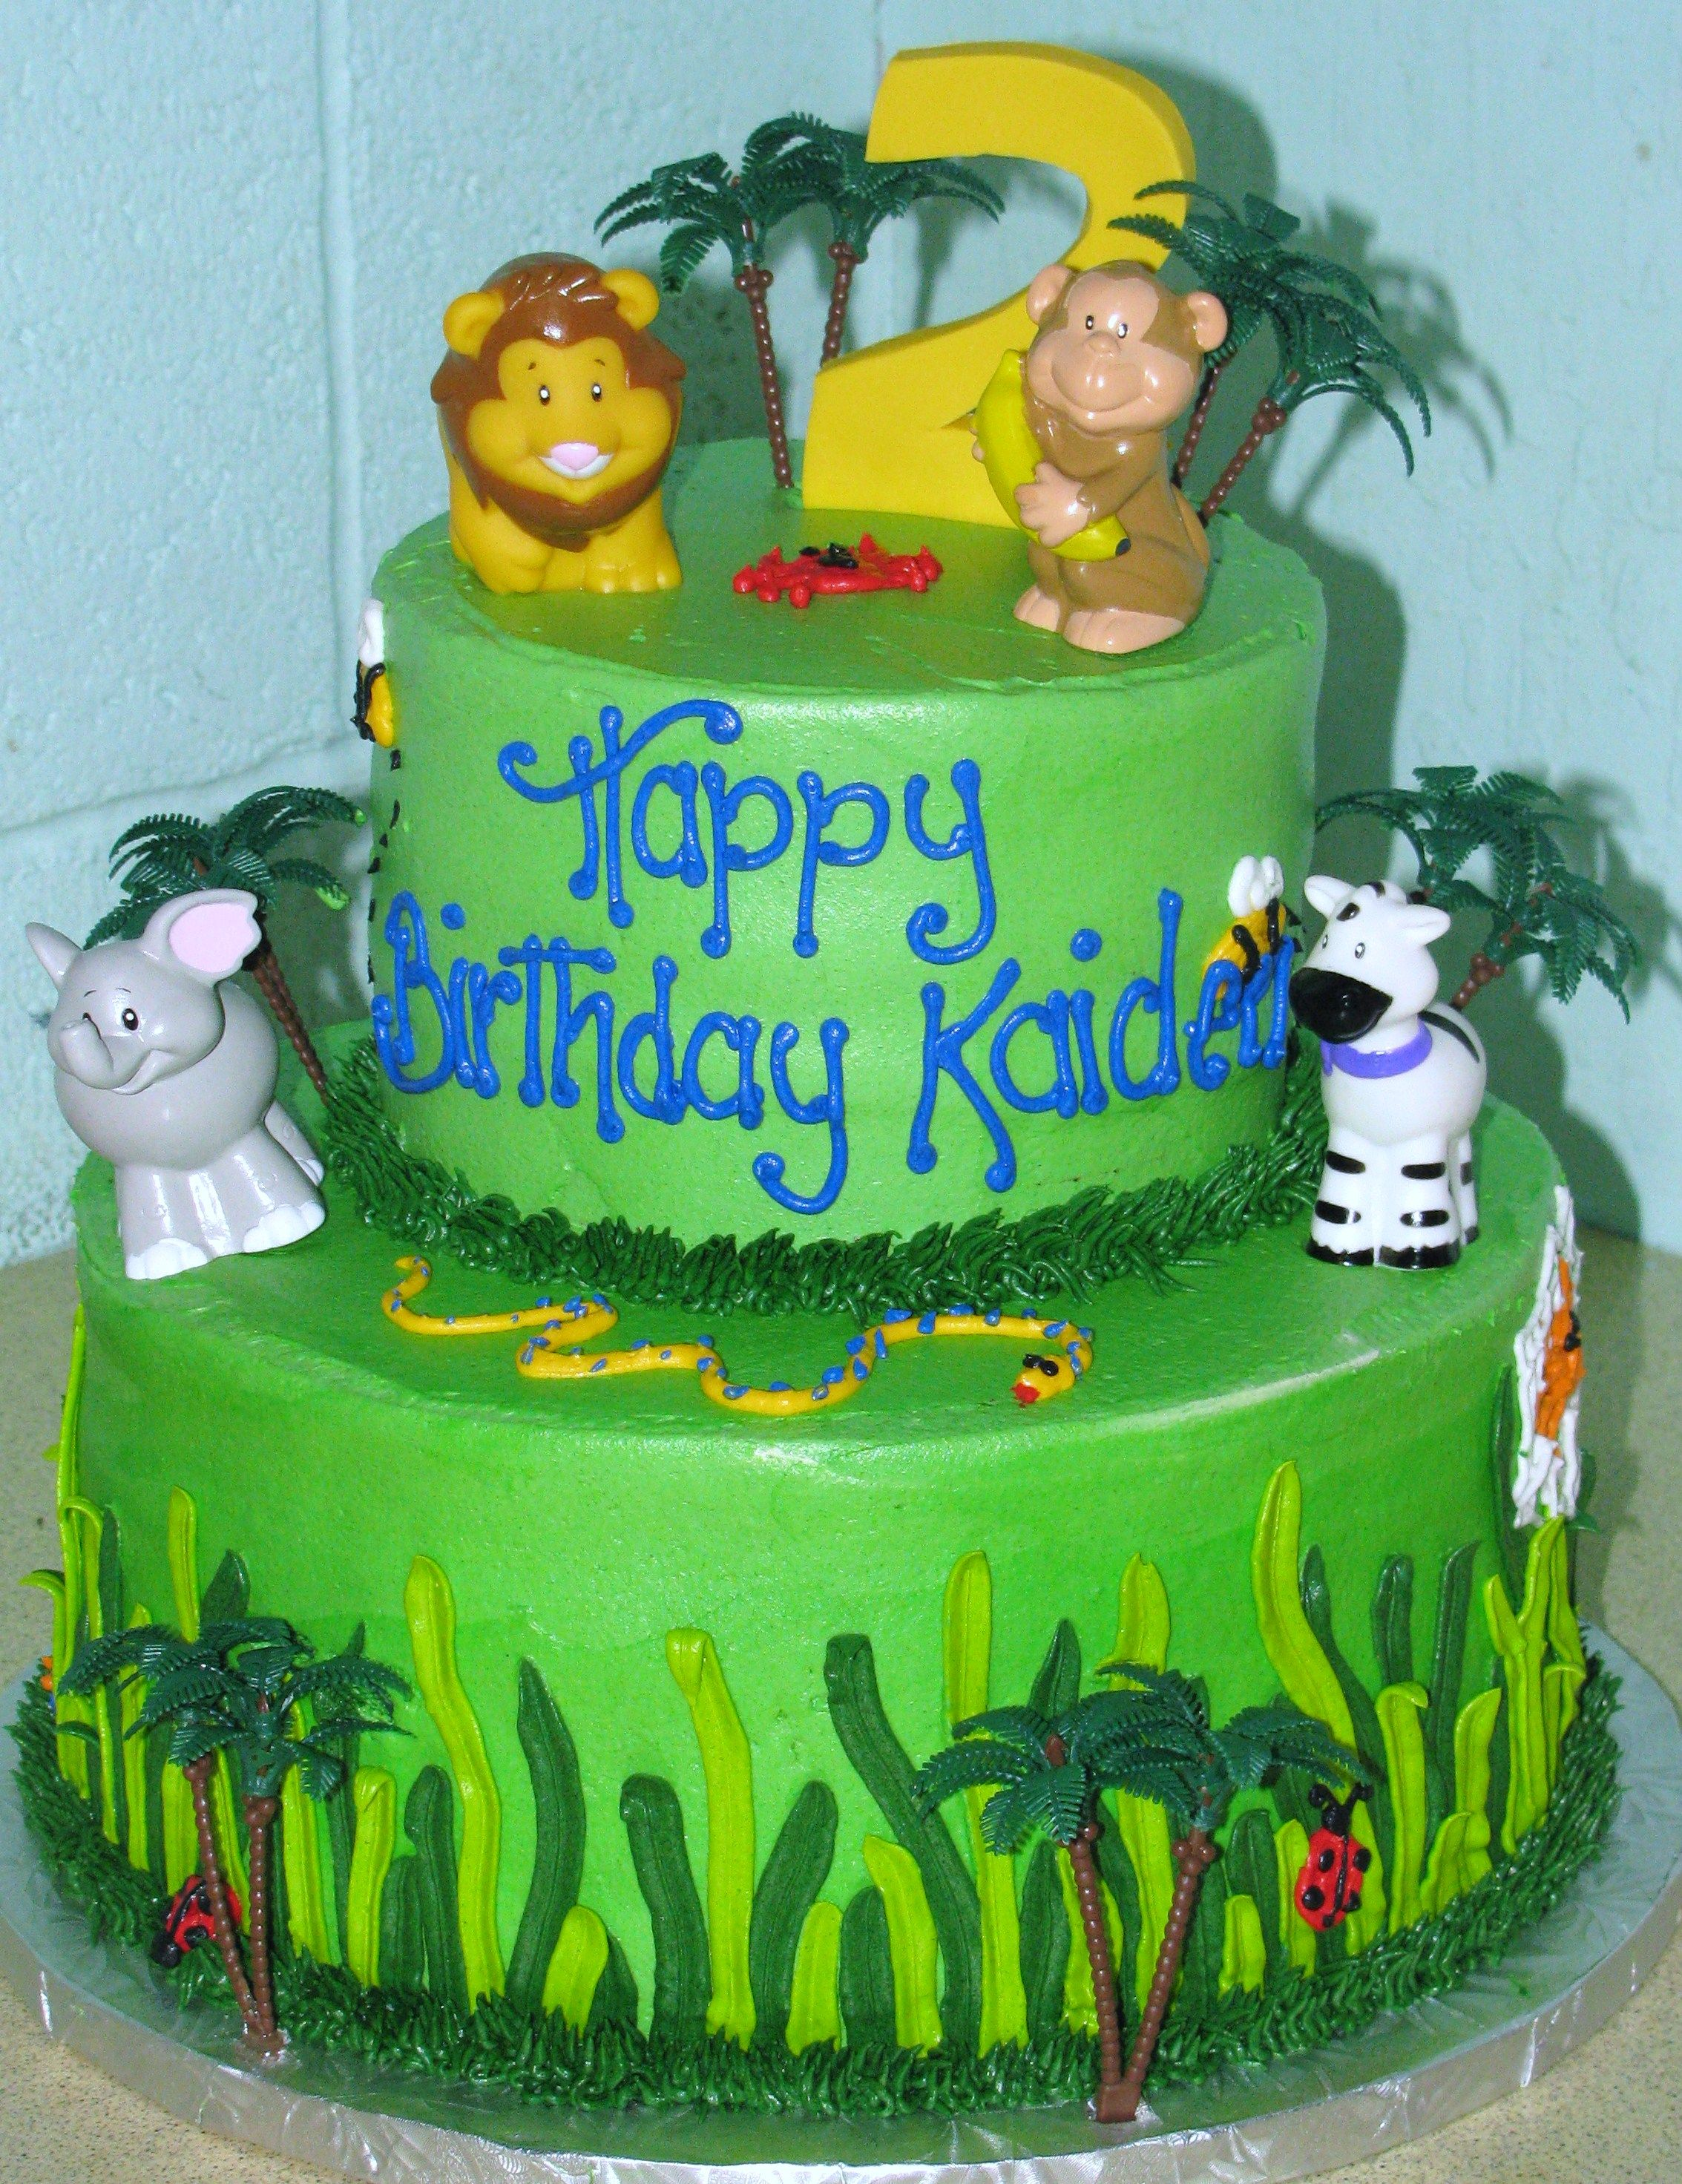 Kaidens Jungle Theme Cake Made By Cest Si Bon Bakery San Jose